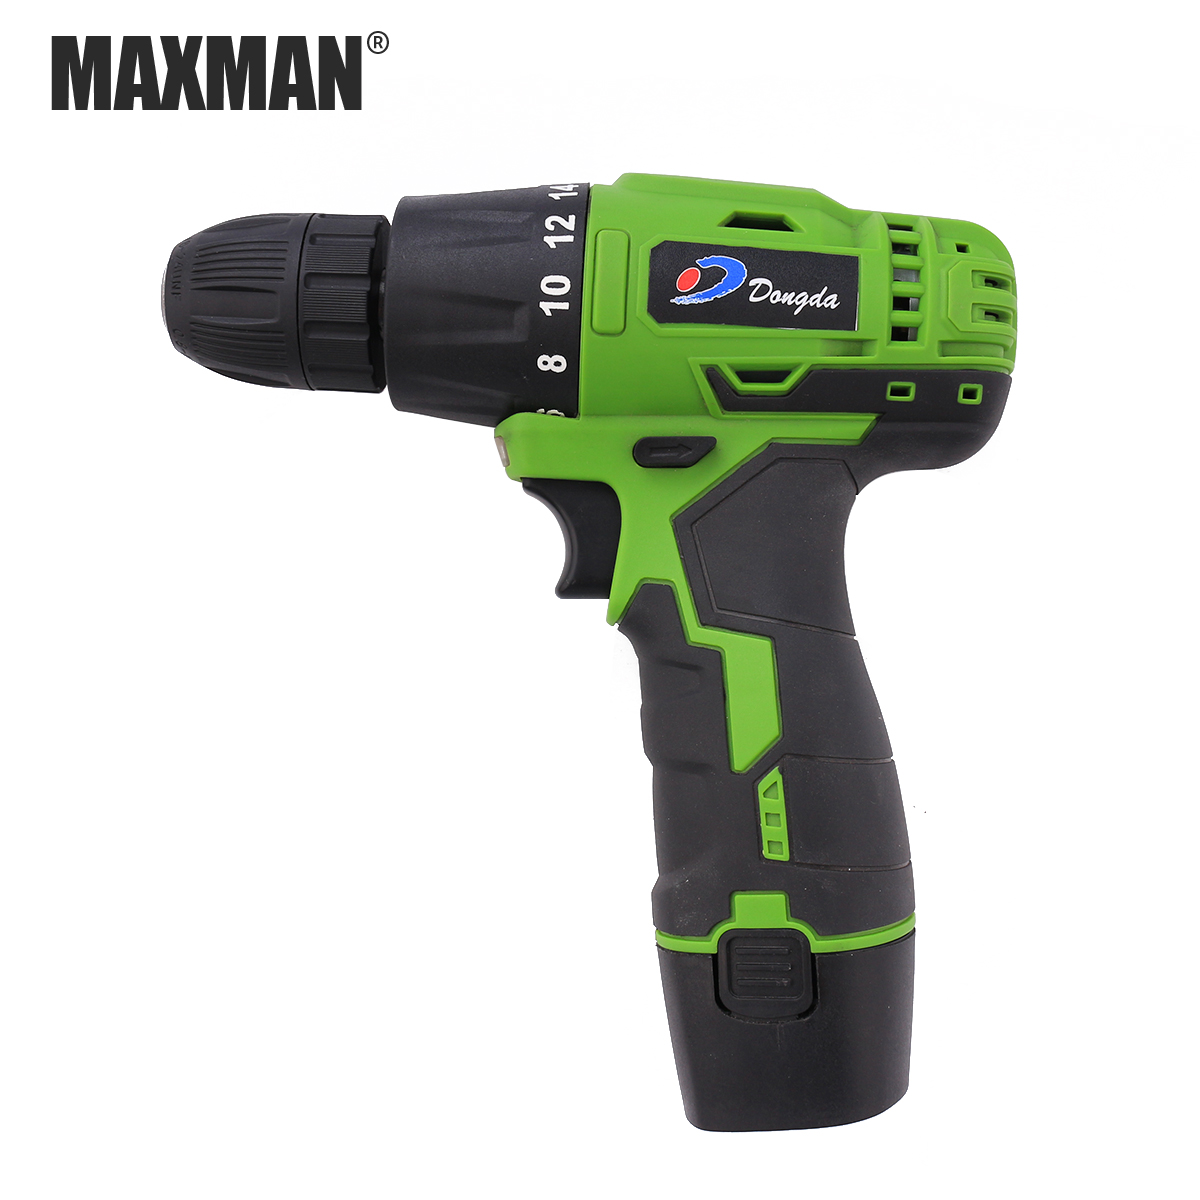 MAXMAN Power Tools 12V DC Lithium-Ion Battery Electric Drill Household Portable Charging Hand Mini Drill Cordless Wrench 1 2 li ion 58v 4 8ah 2800r min lithium battery socket wrench electric impact wrench car tyre wheel cordless wrench drill